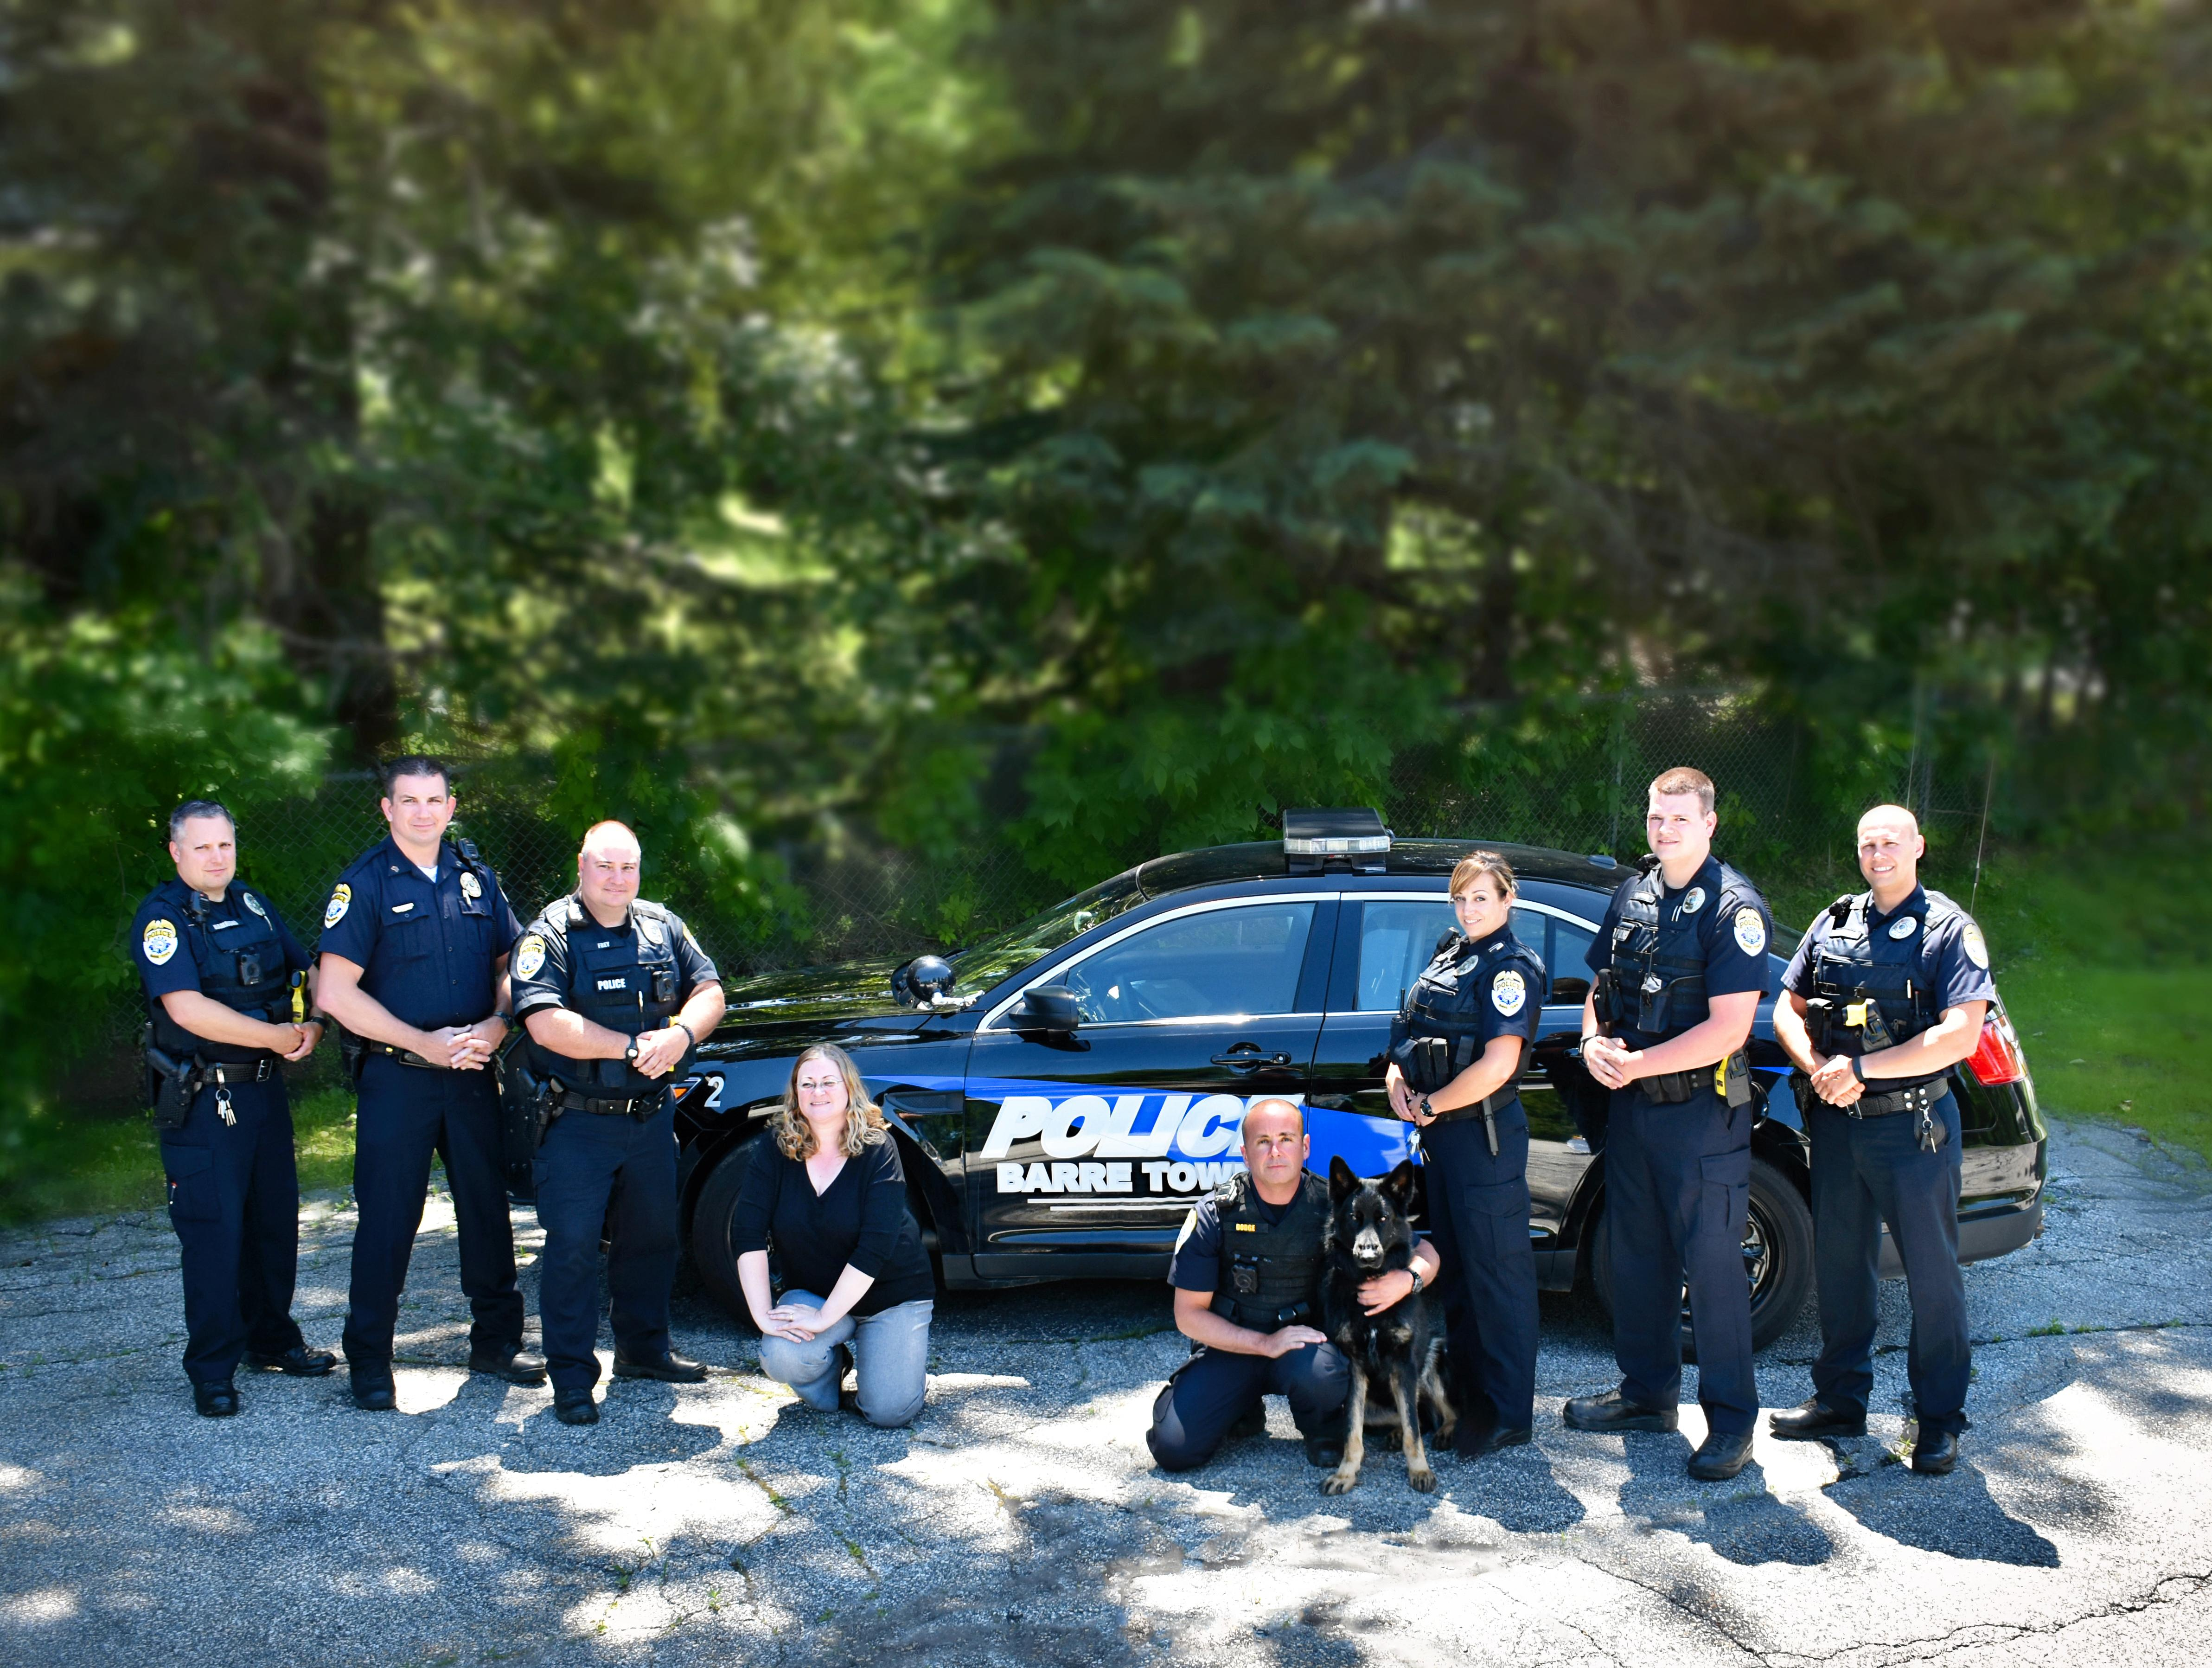 Welcome to the barre town police department sciox Gallery